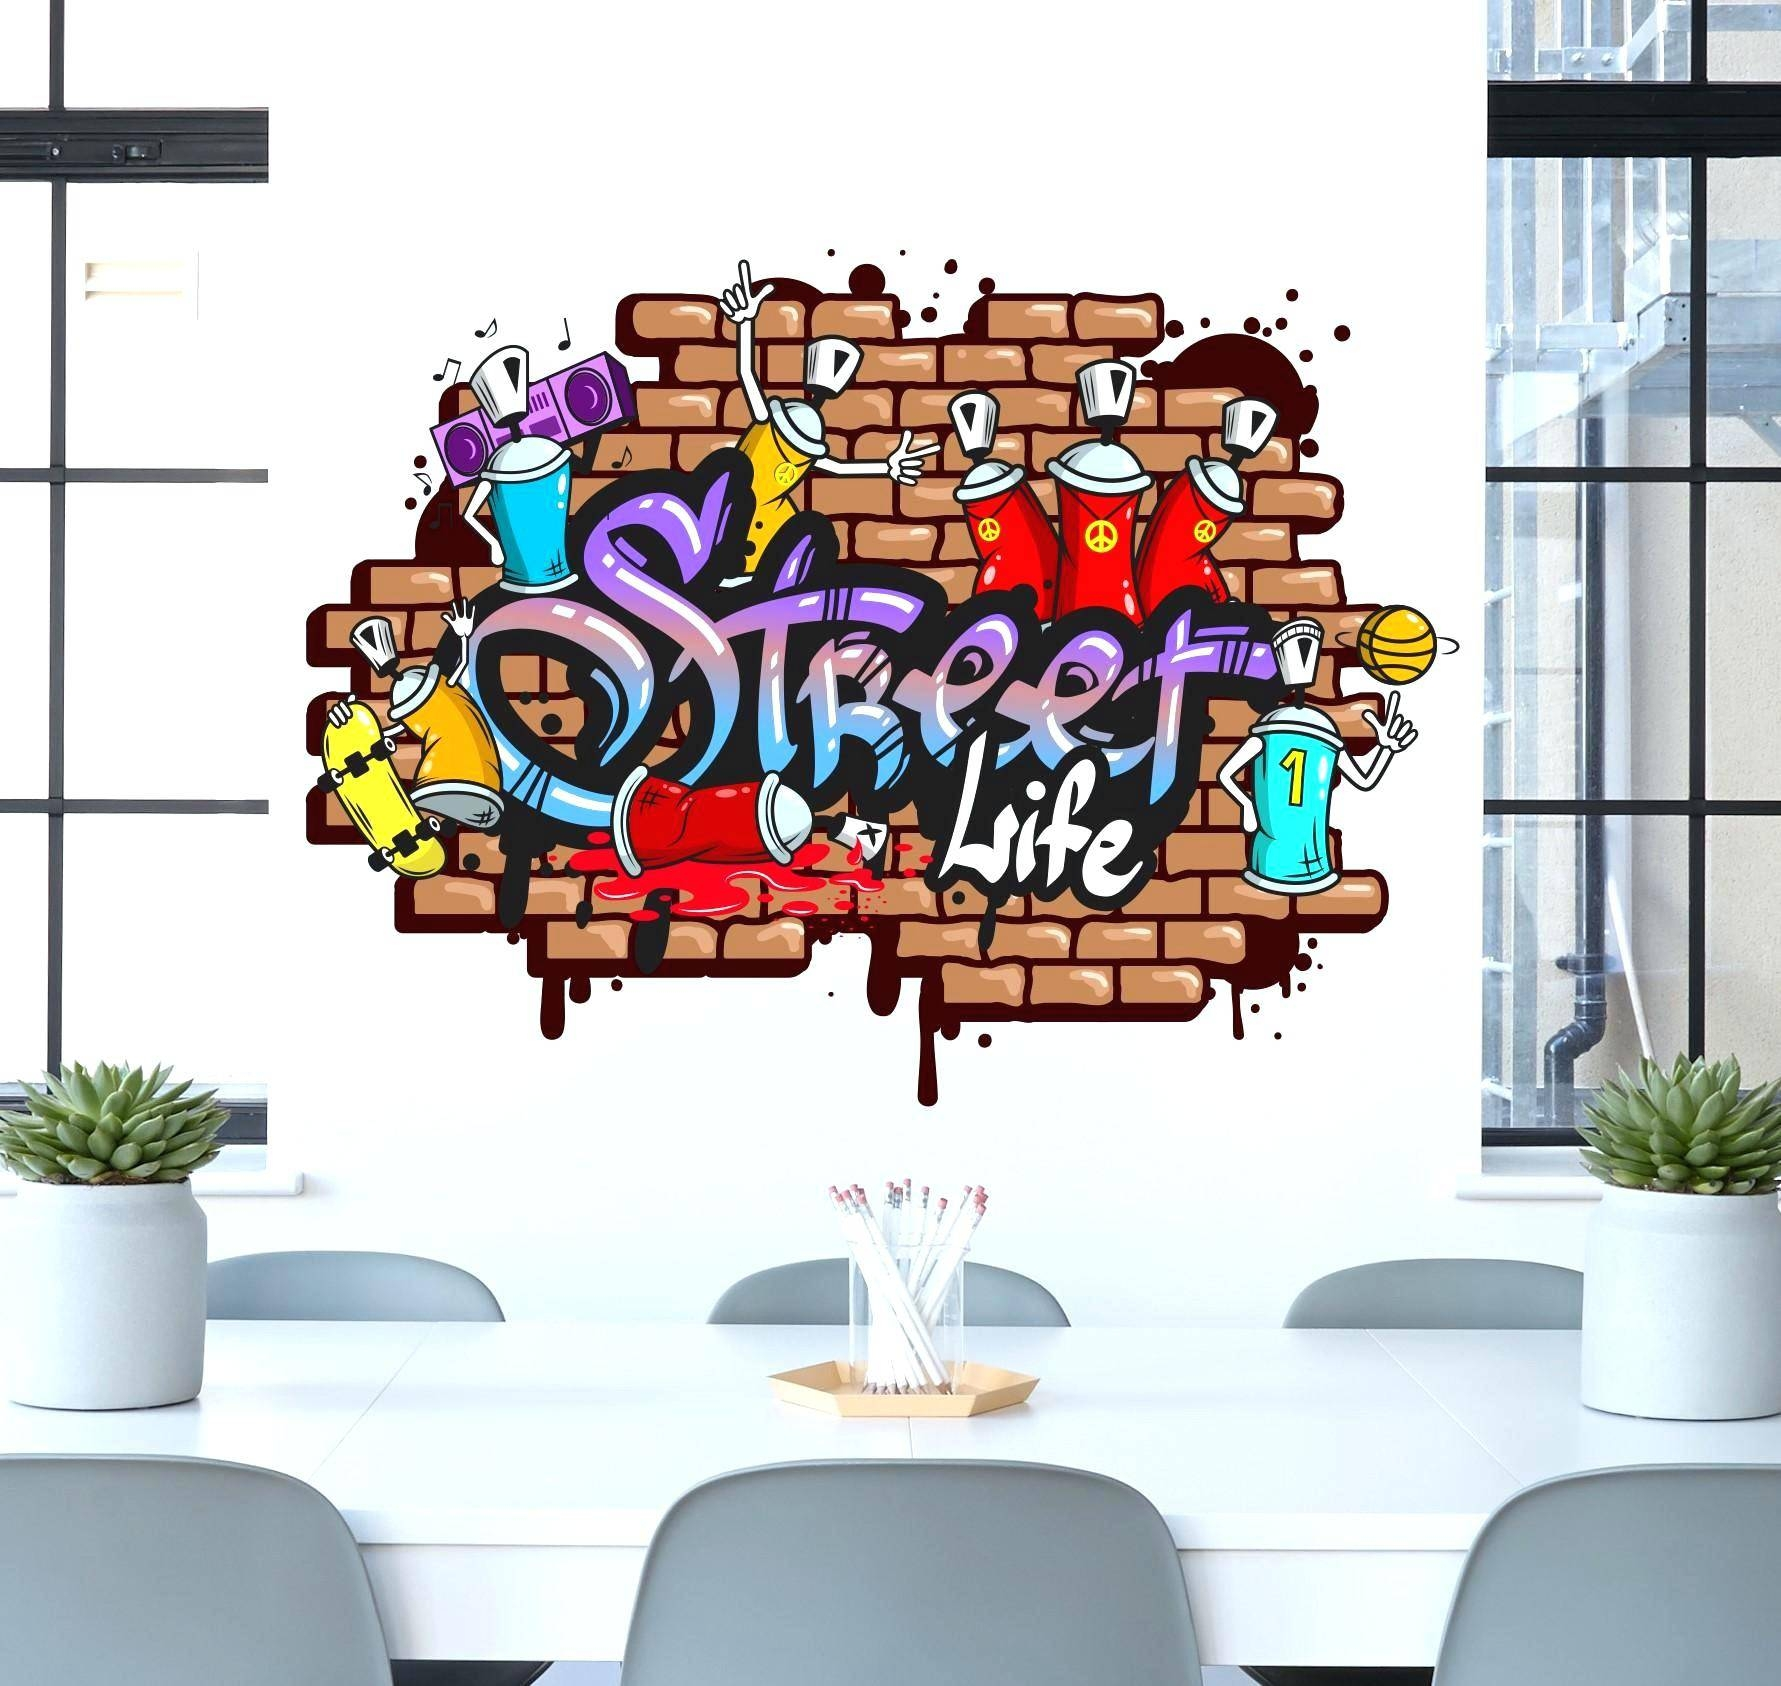 Graffiti Decals For Walls Personalised Graffiti Name Wall Decal Within Most Popular Graffiti Wall Art Stickers (View 11 of 30)